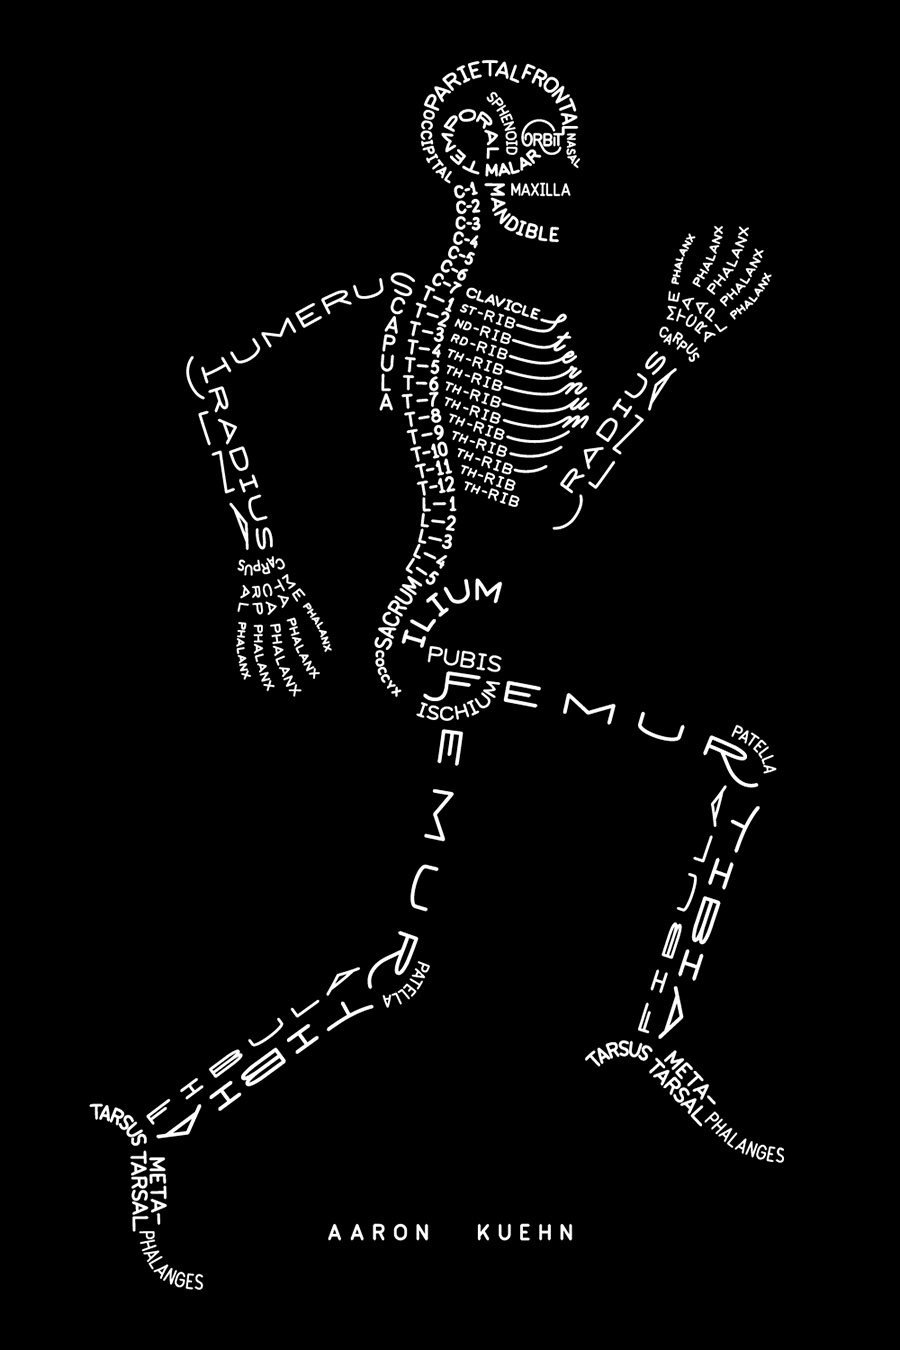 SkeletonTypogram-AaronKuehn